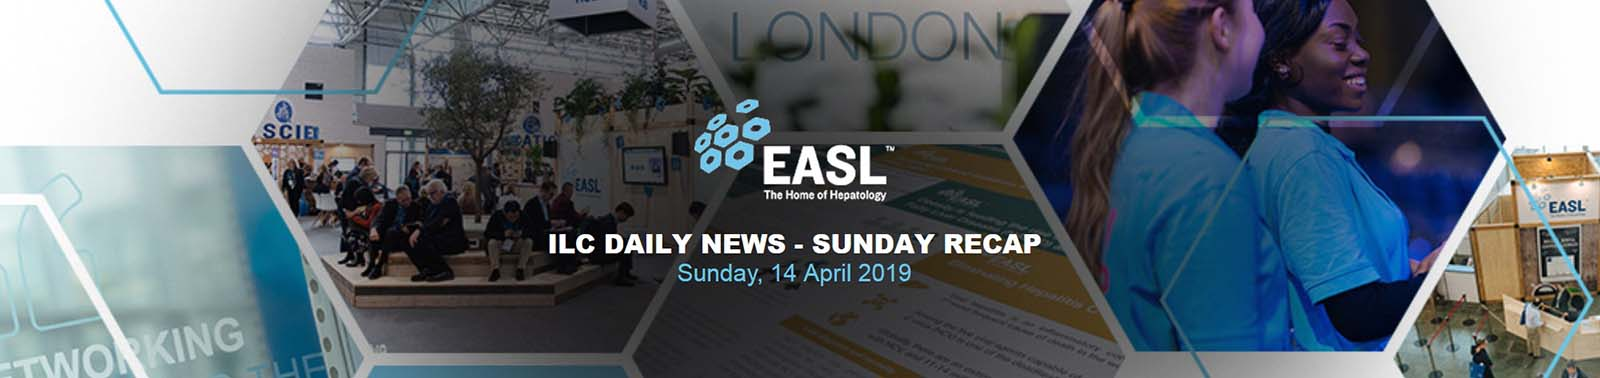 ILC 2019 Daily News - Sunday Recap